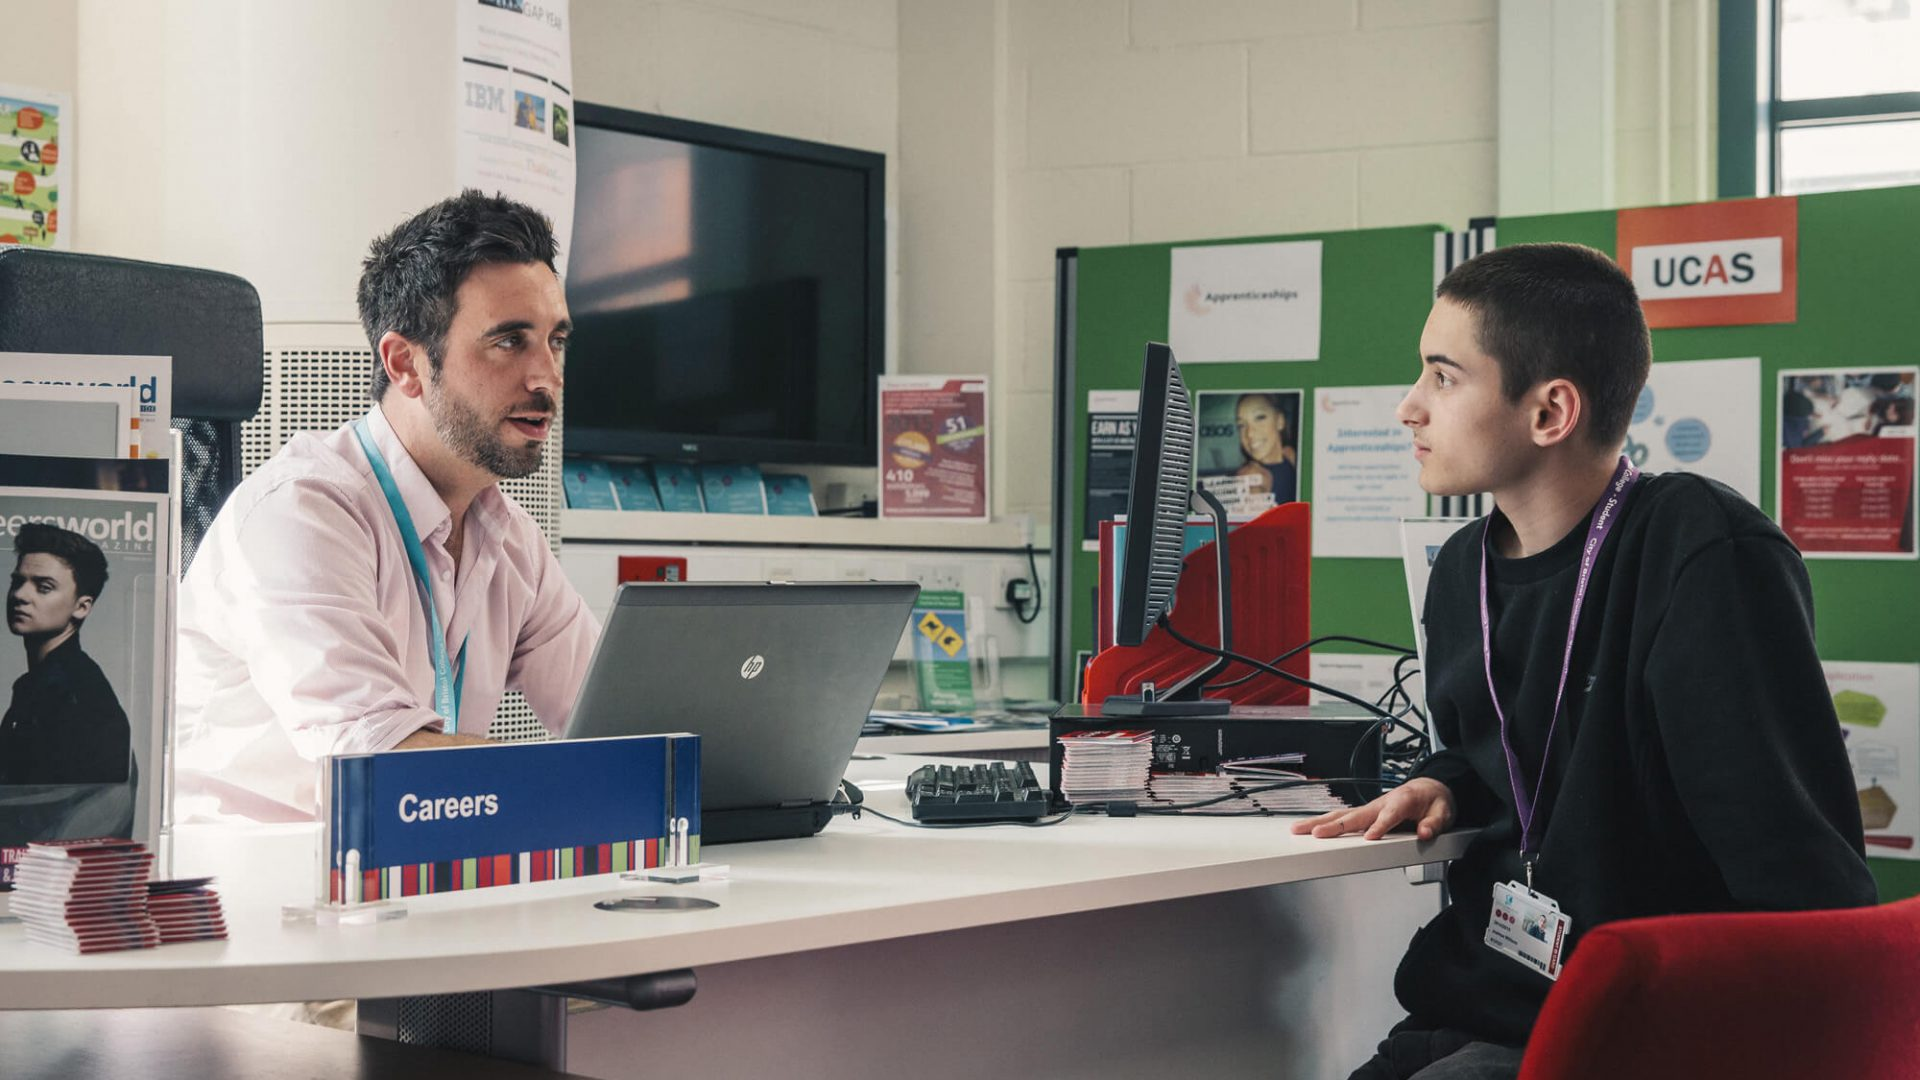 A member of staff speaks with a seated student in a classroom